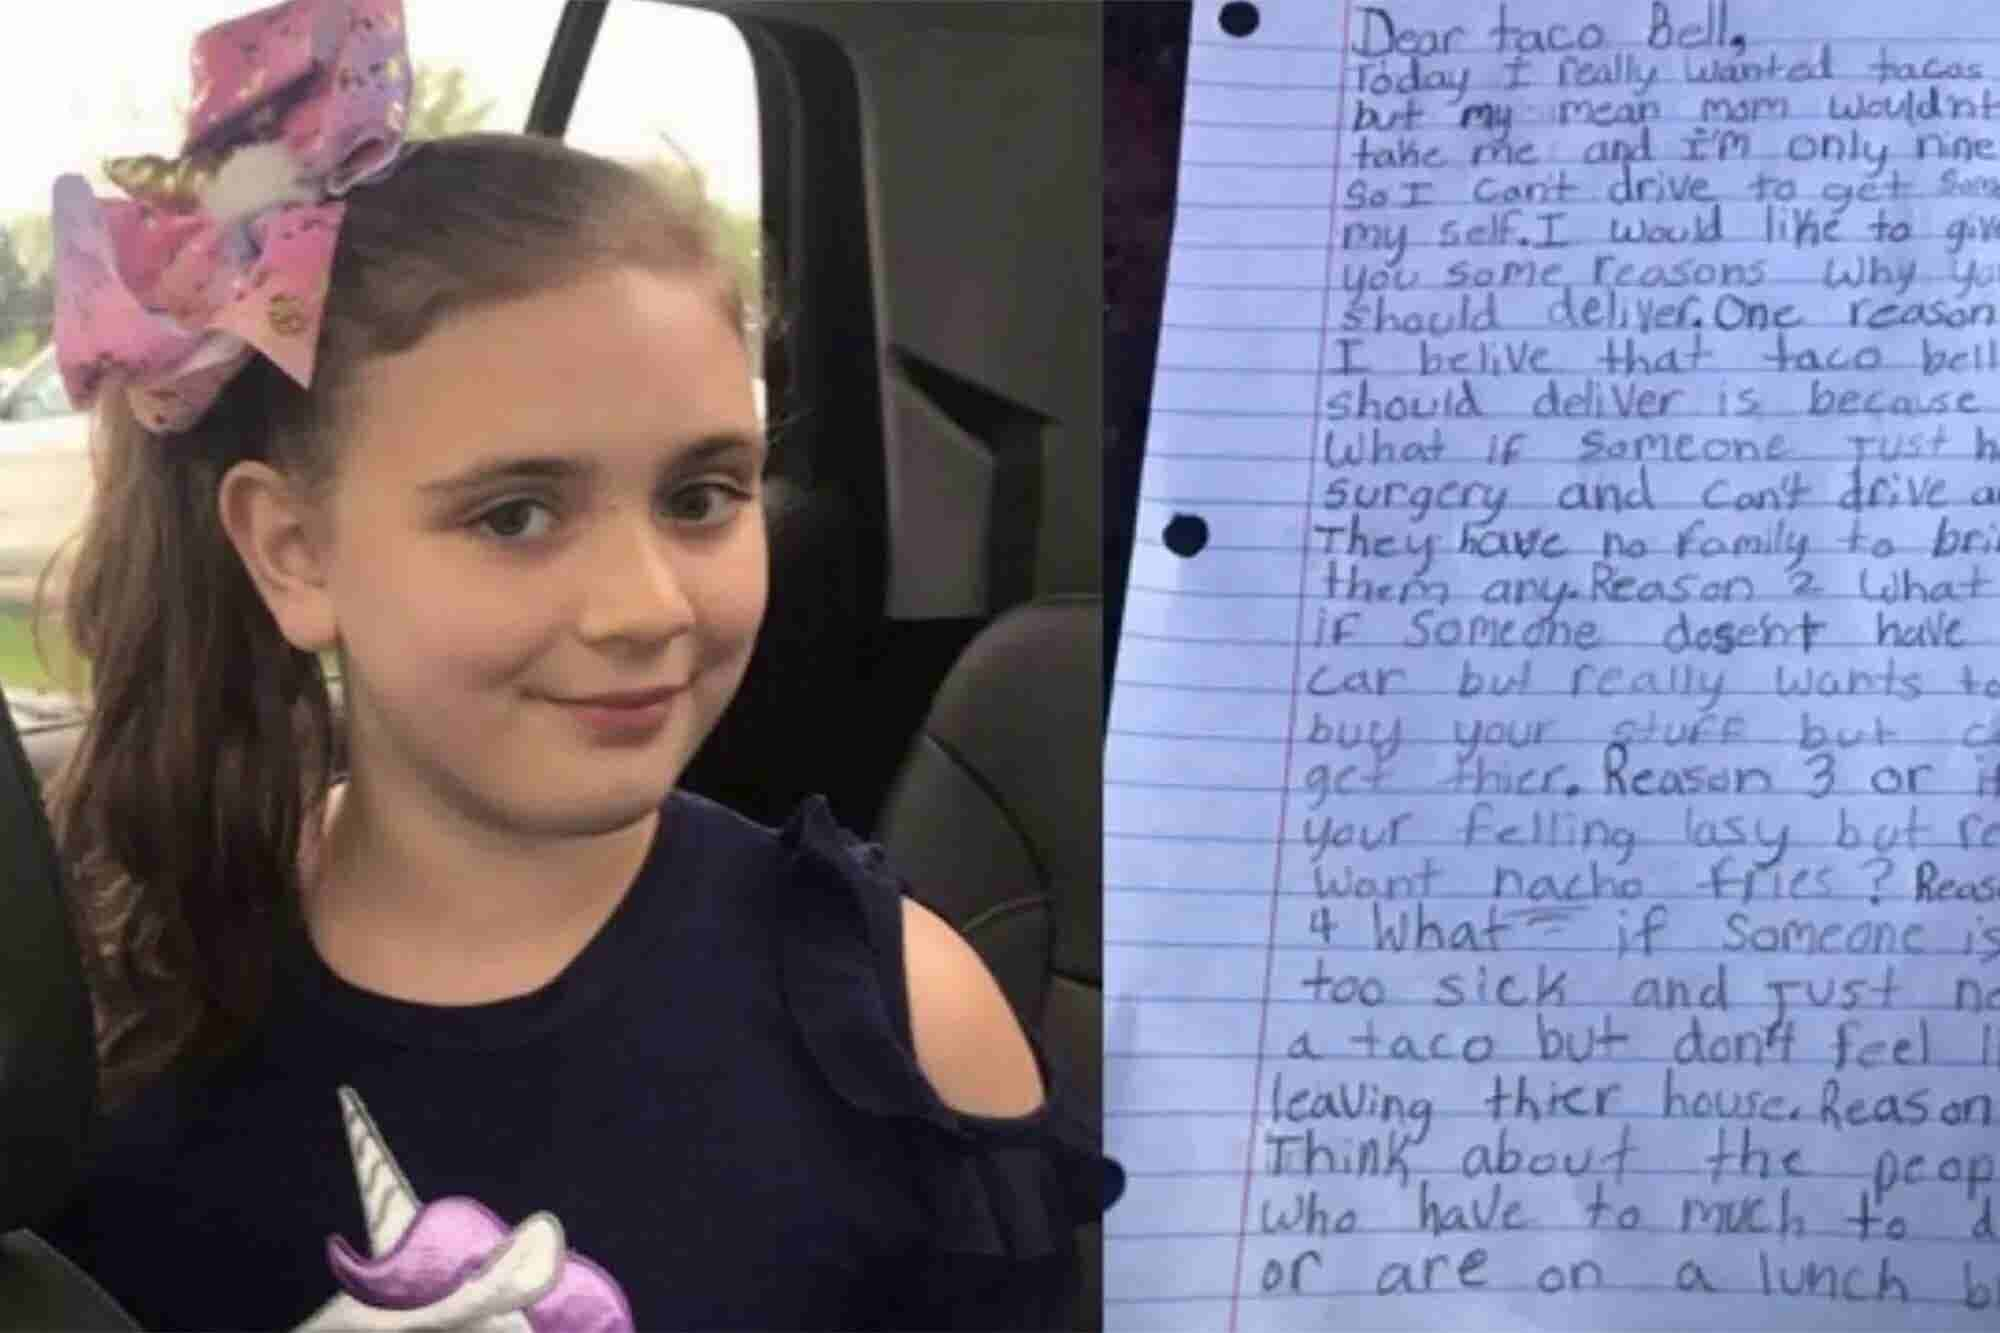 This 9-Year-Old Wrote to Taco Bell Asking Why They Don't Deliver. Now...